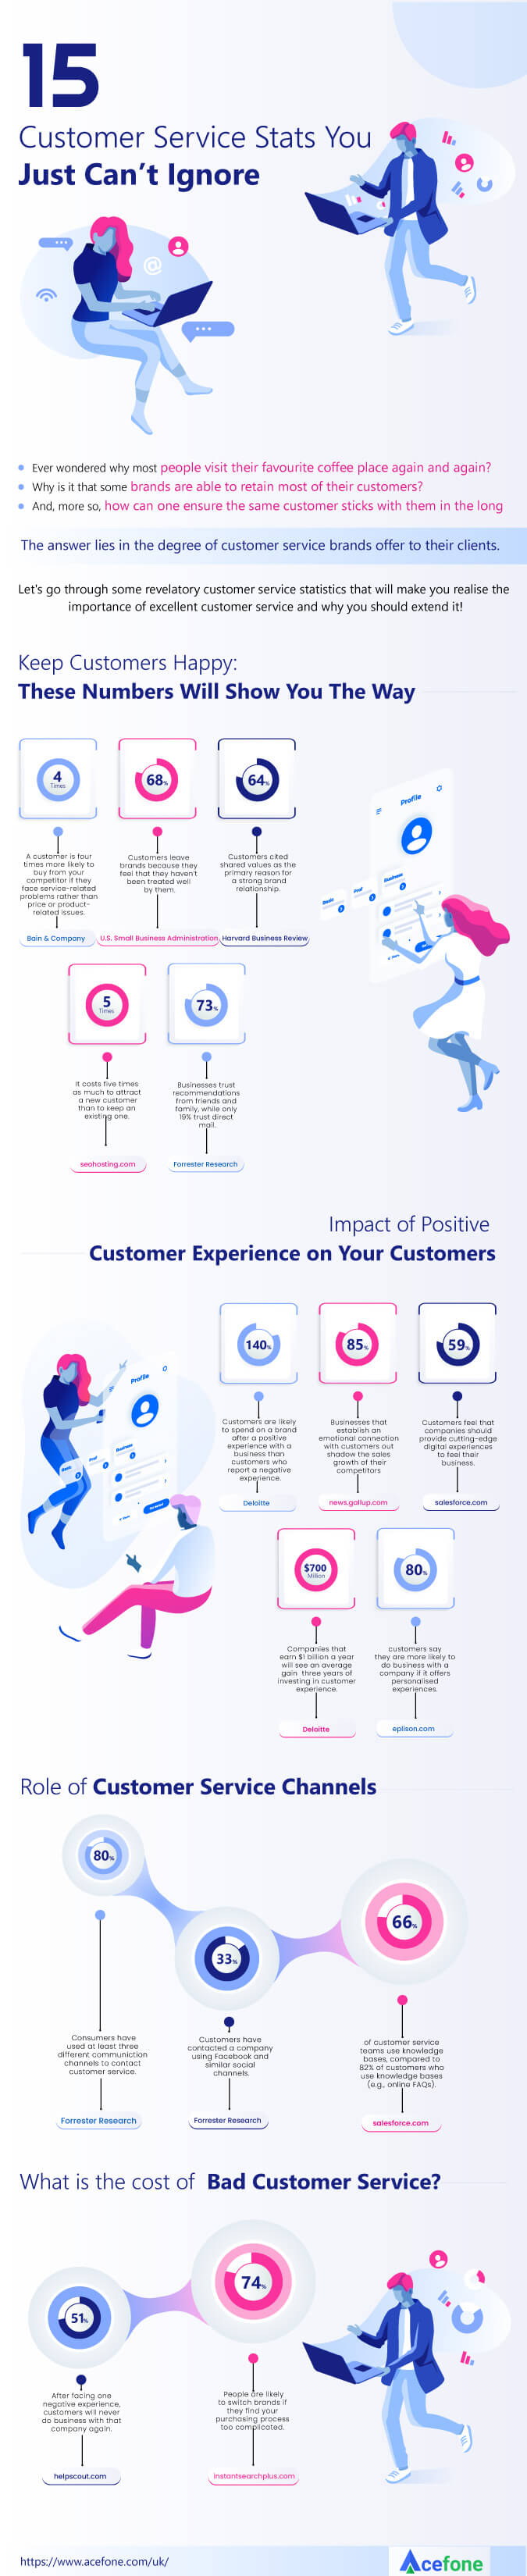 Customer Service Stats Infographic